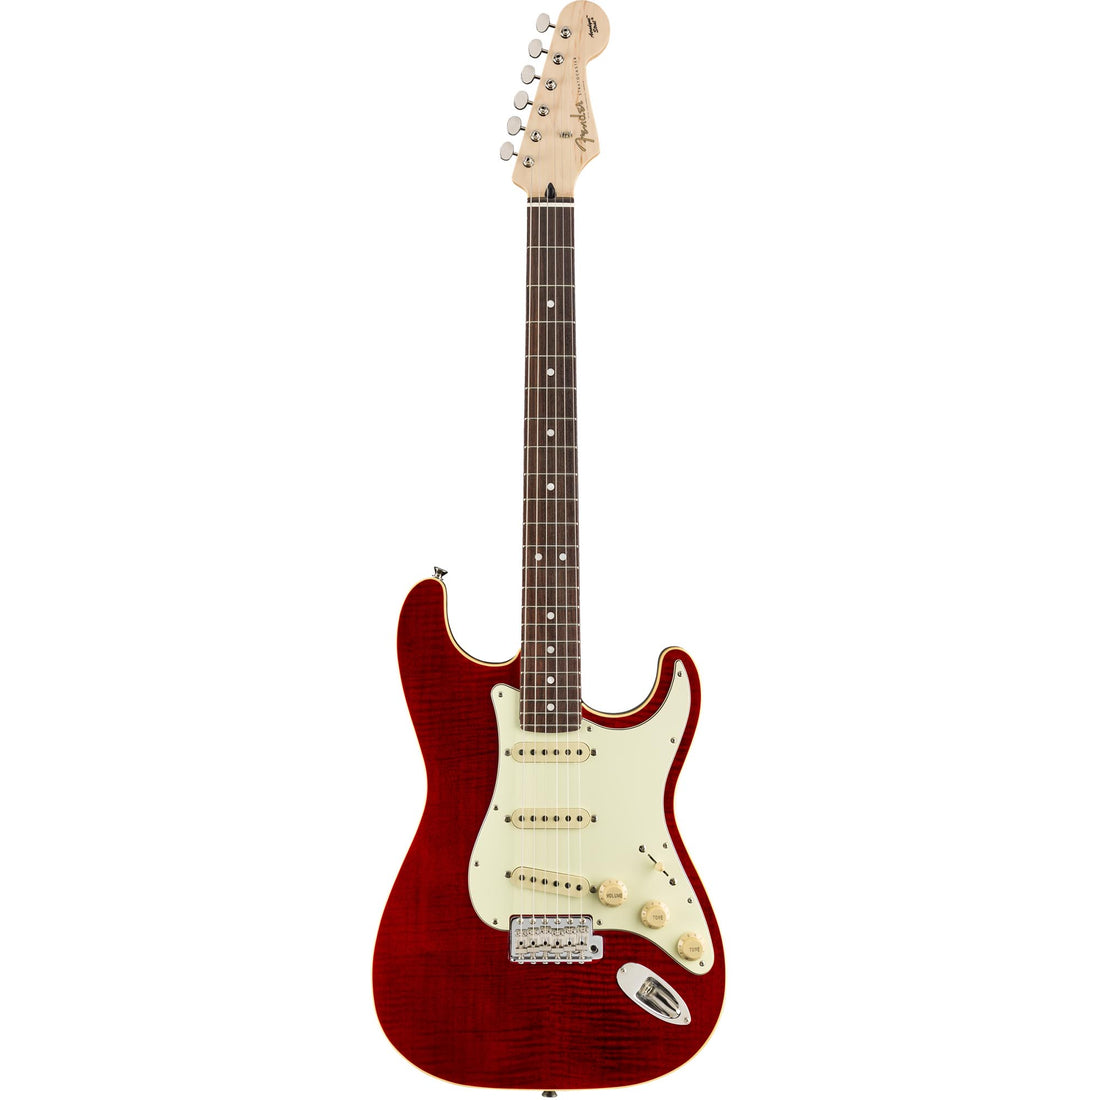 Fender Aerodyne Classic Stratocaster Flame Maple Top Rosewood, Crimson Red Transparent